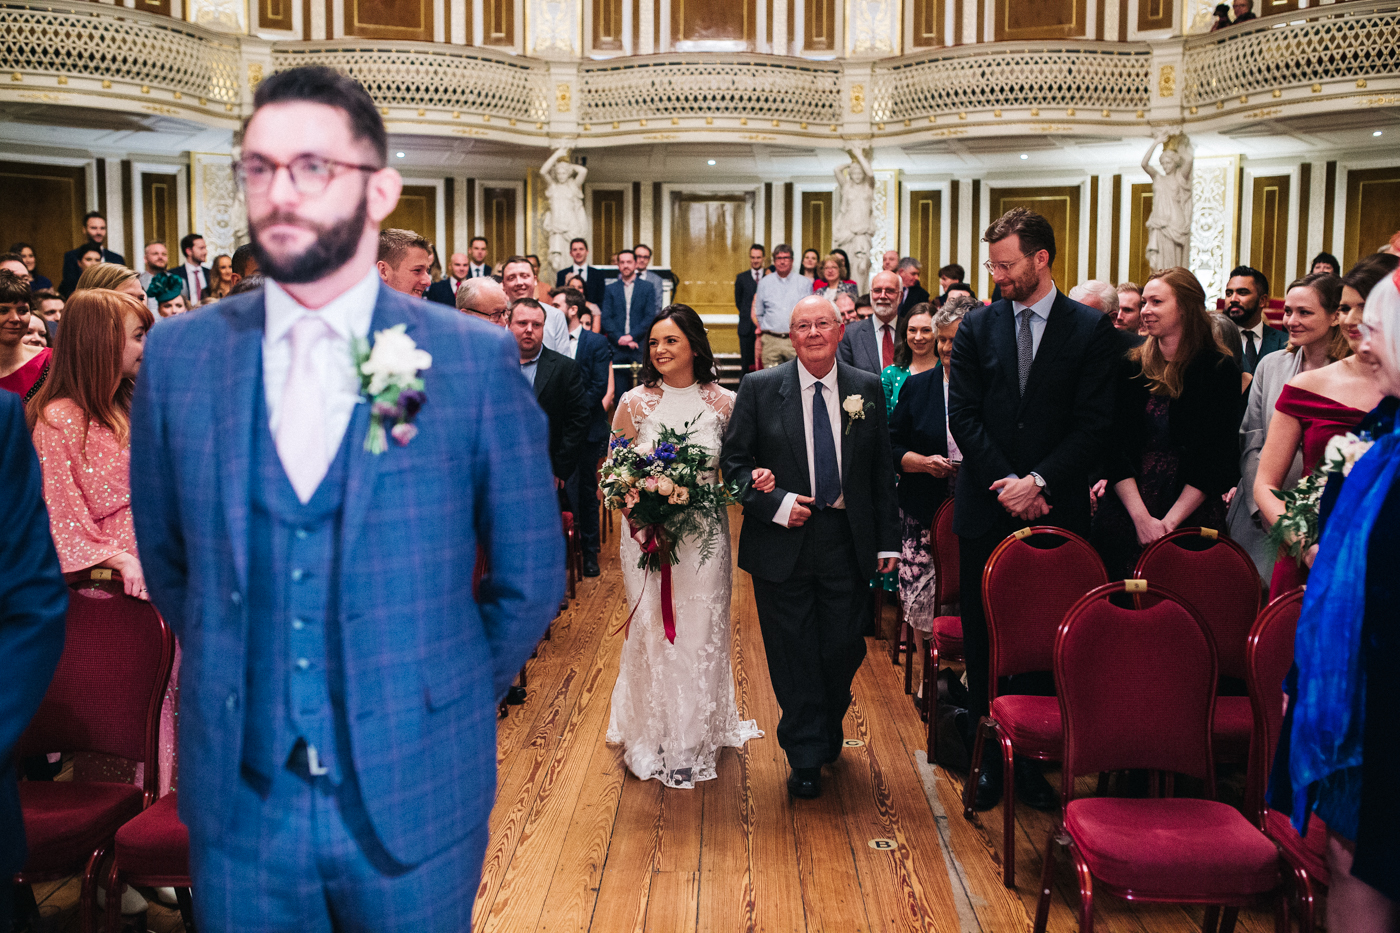 the bride walks down the aisle with her dad, the groom doesn't turn around. ceremony at st georges hall liverpool, oh me oh my wedding reception, north west wedding photographer